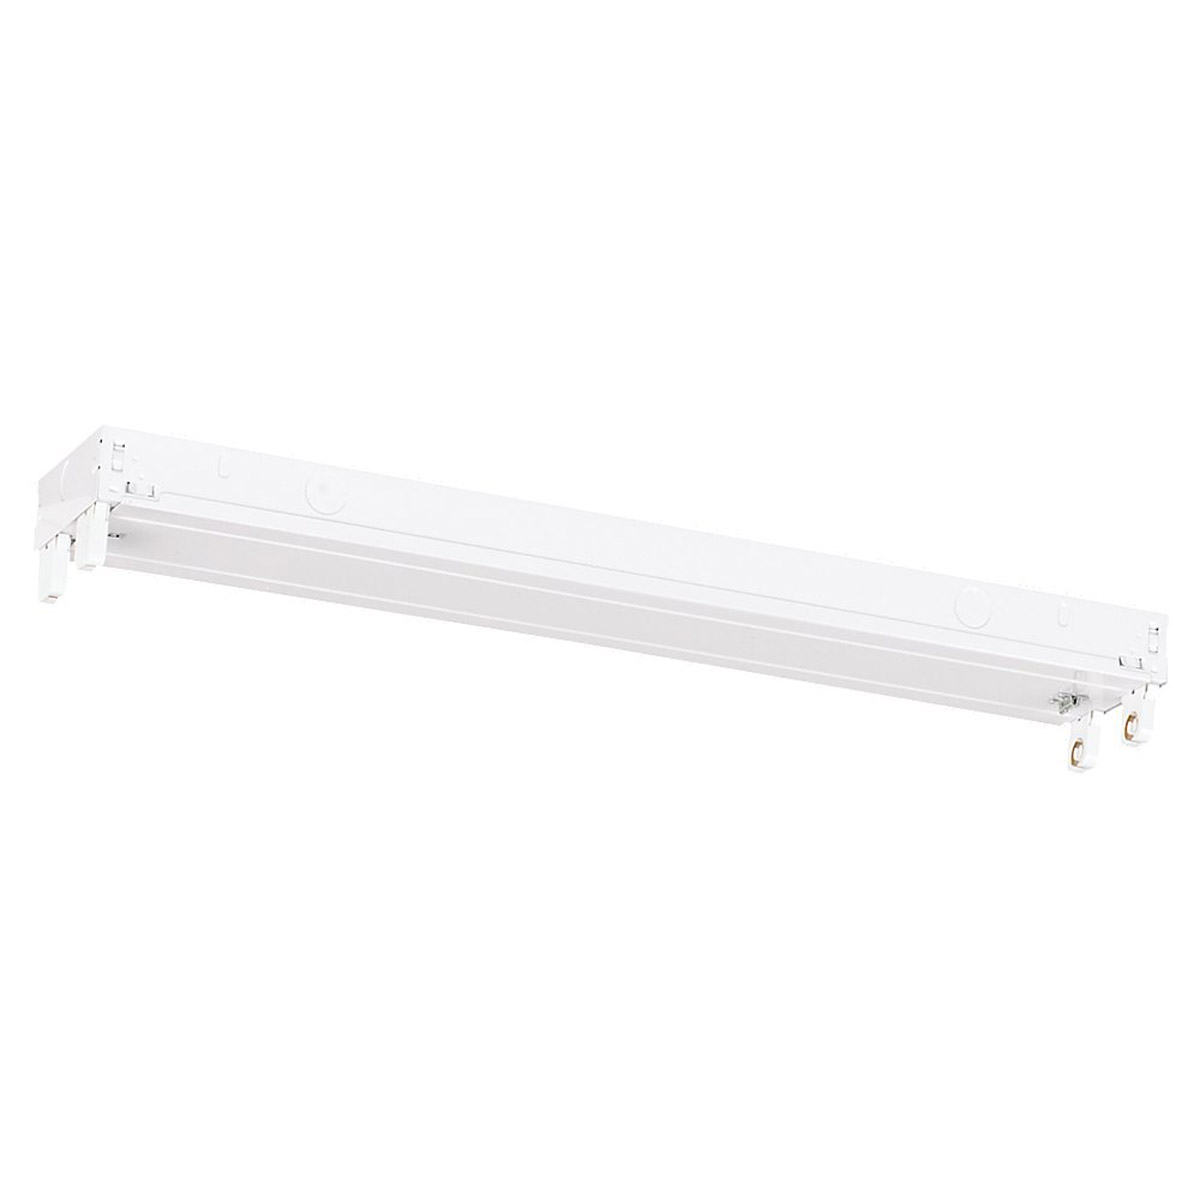 Sea Gull Lighting Signature 2 Light Fluorescent Strip Light in White 59021L-15 photo